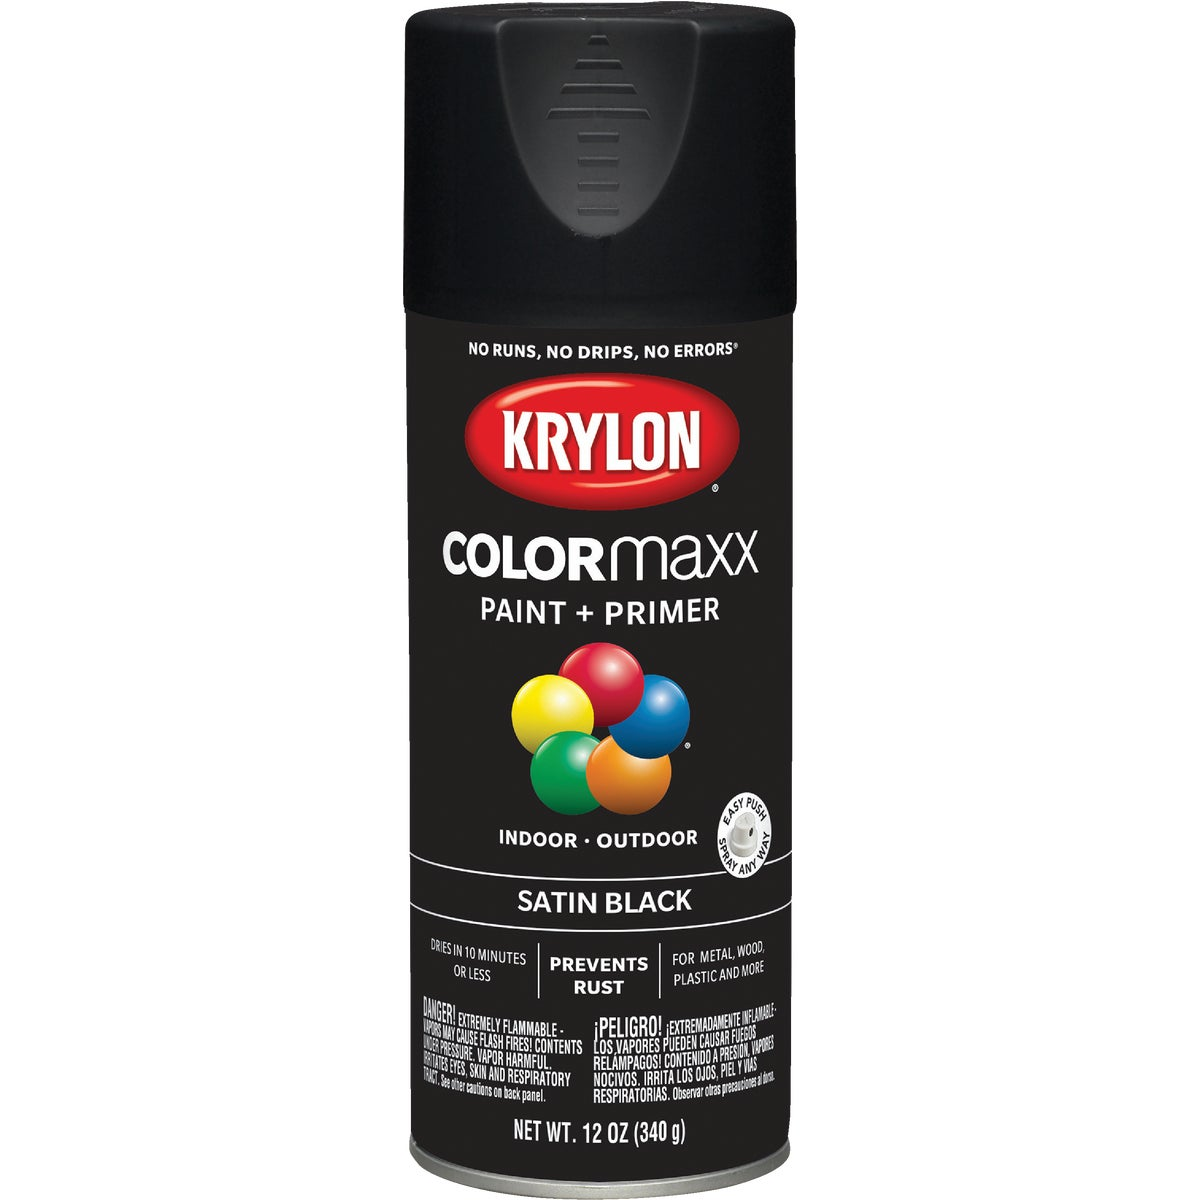 SATIN BLACK SPRAY PAINT - 51613 by Krylon/consumer Div